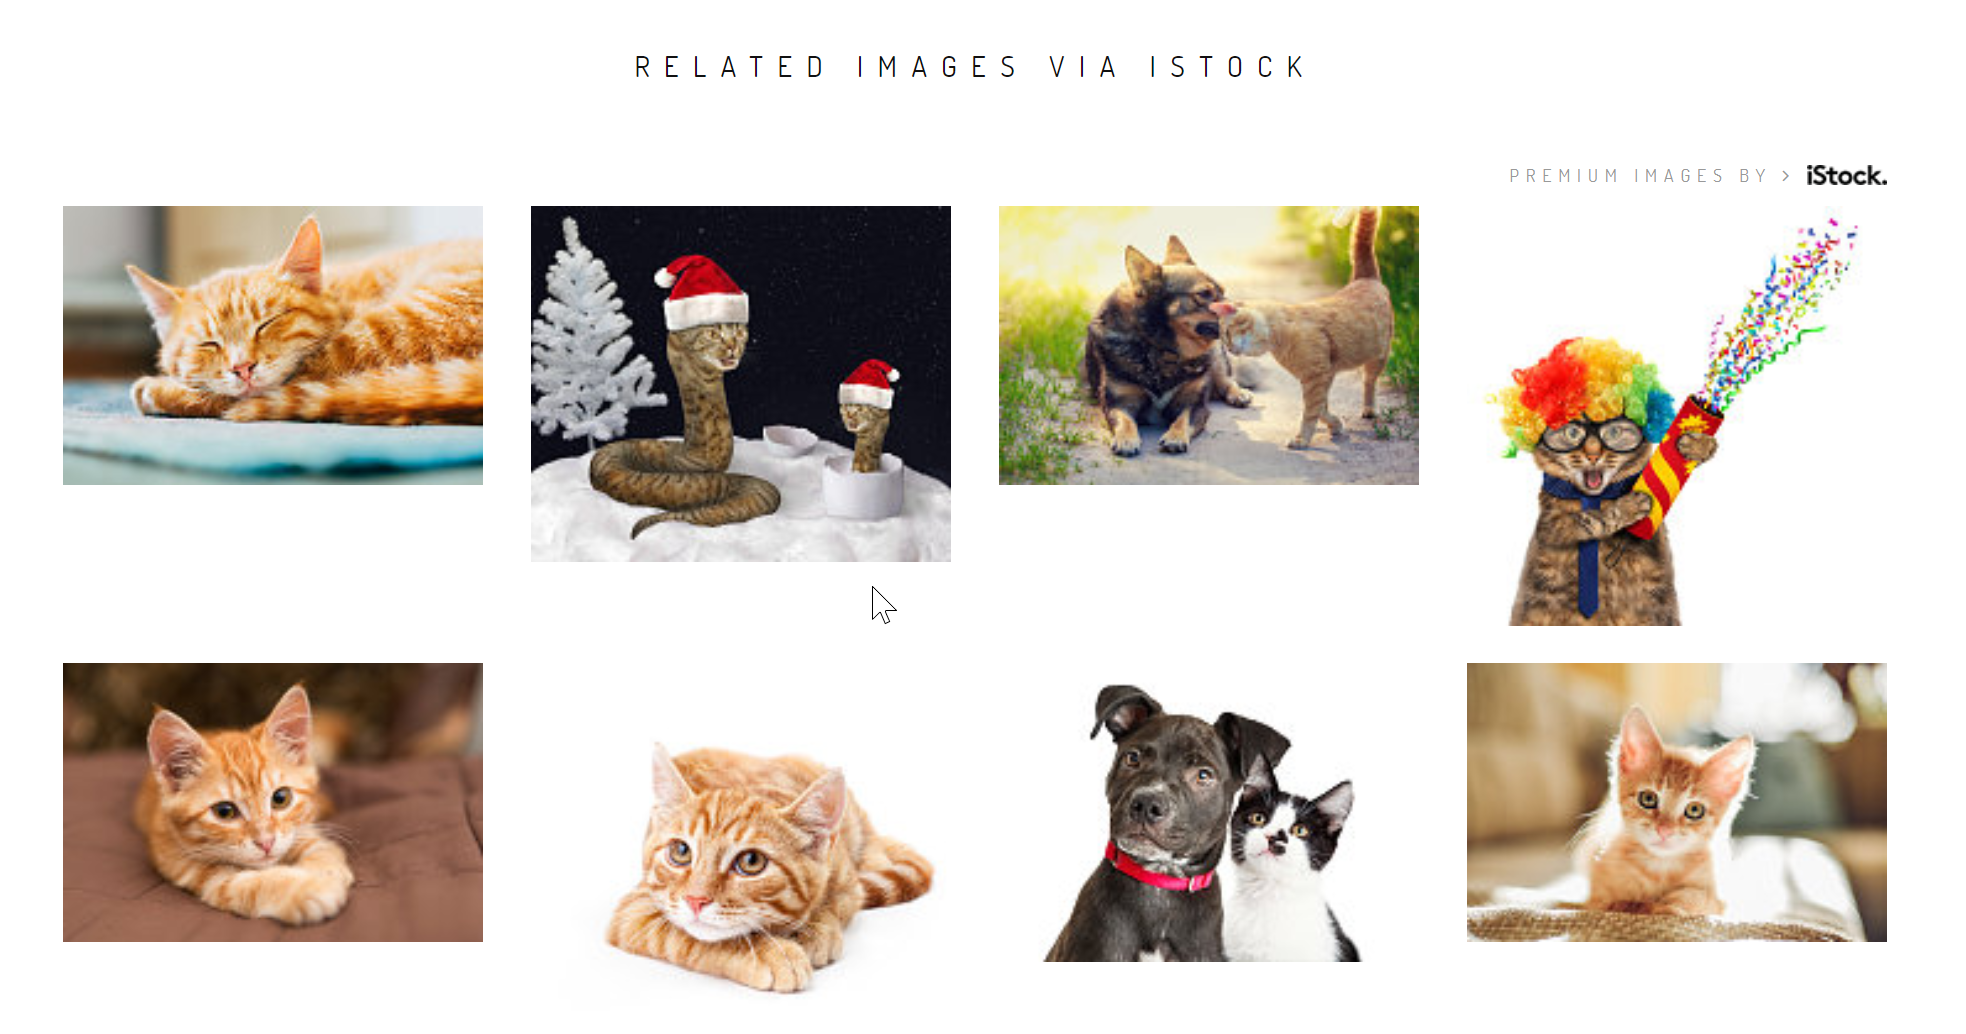 Where to find free stock photos online - Related Images